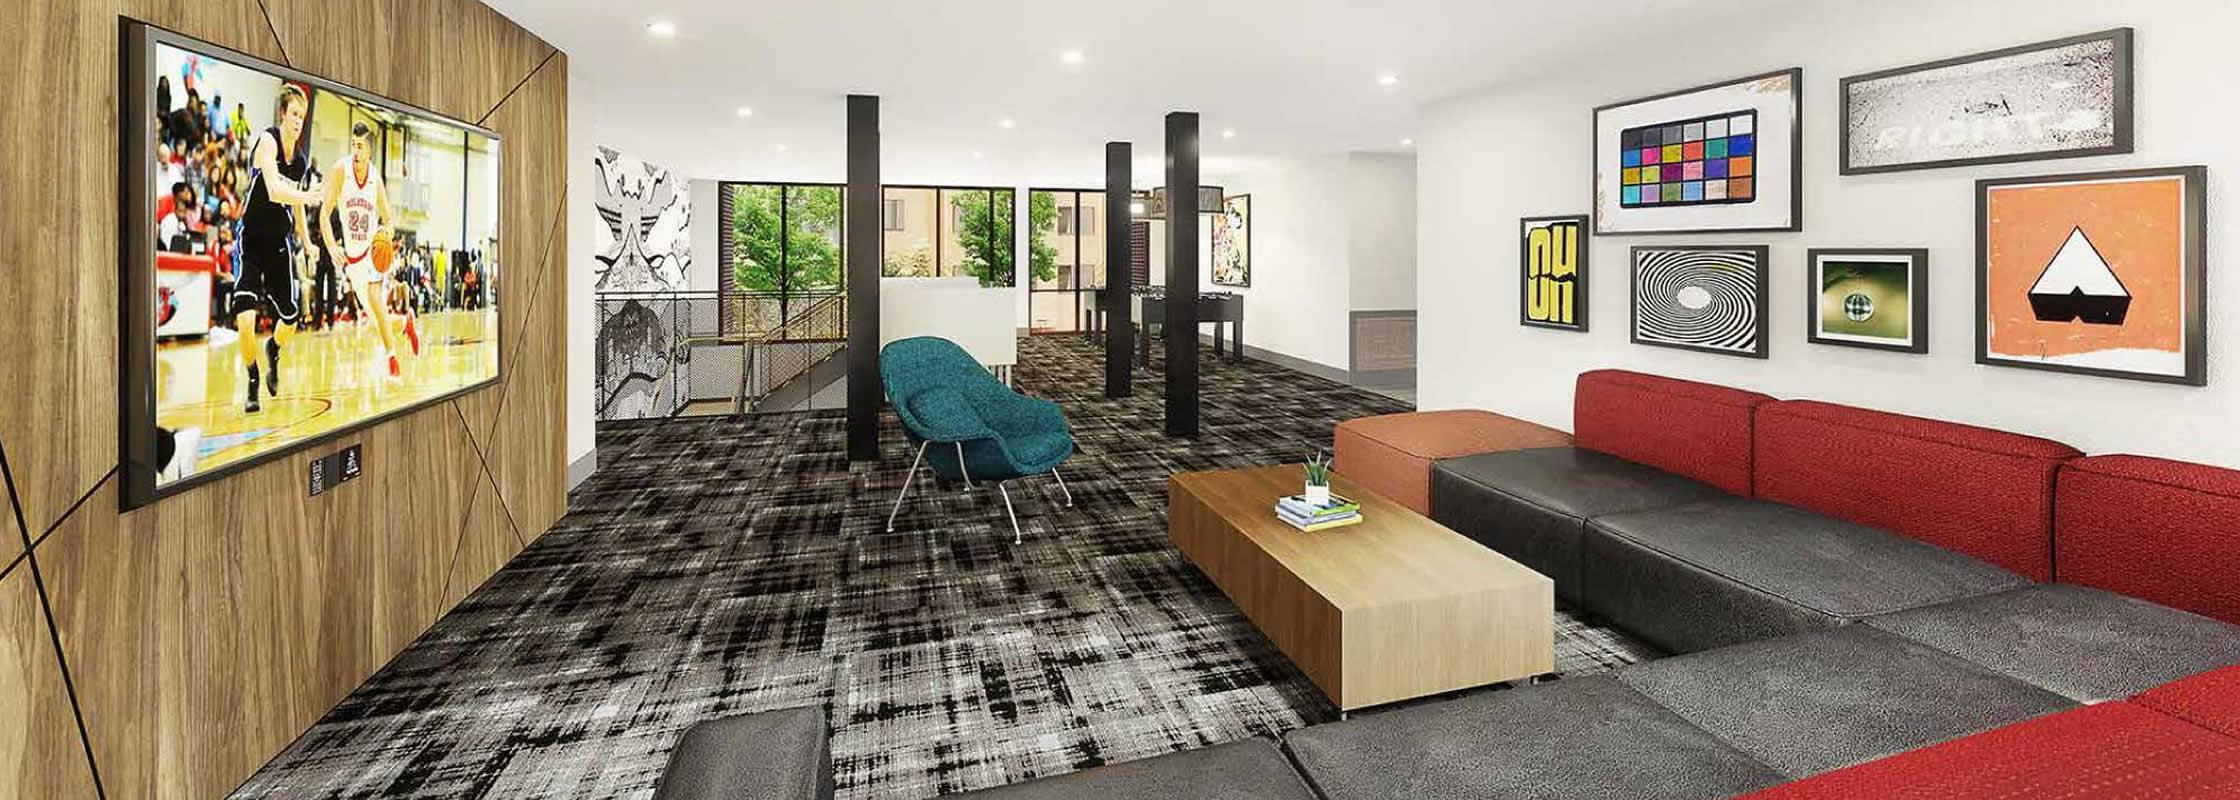 New student housing interior